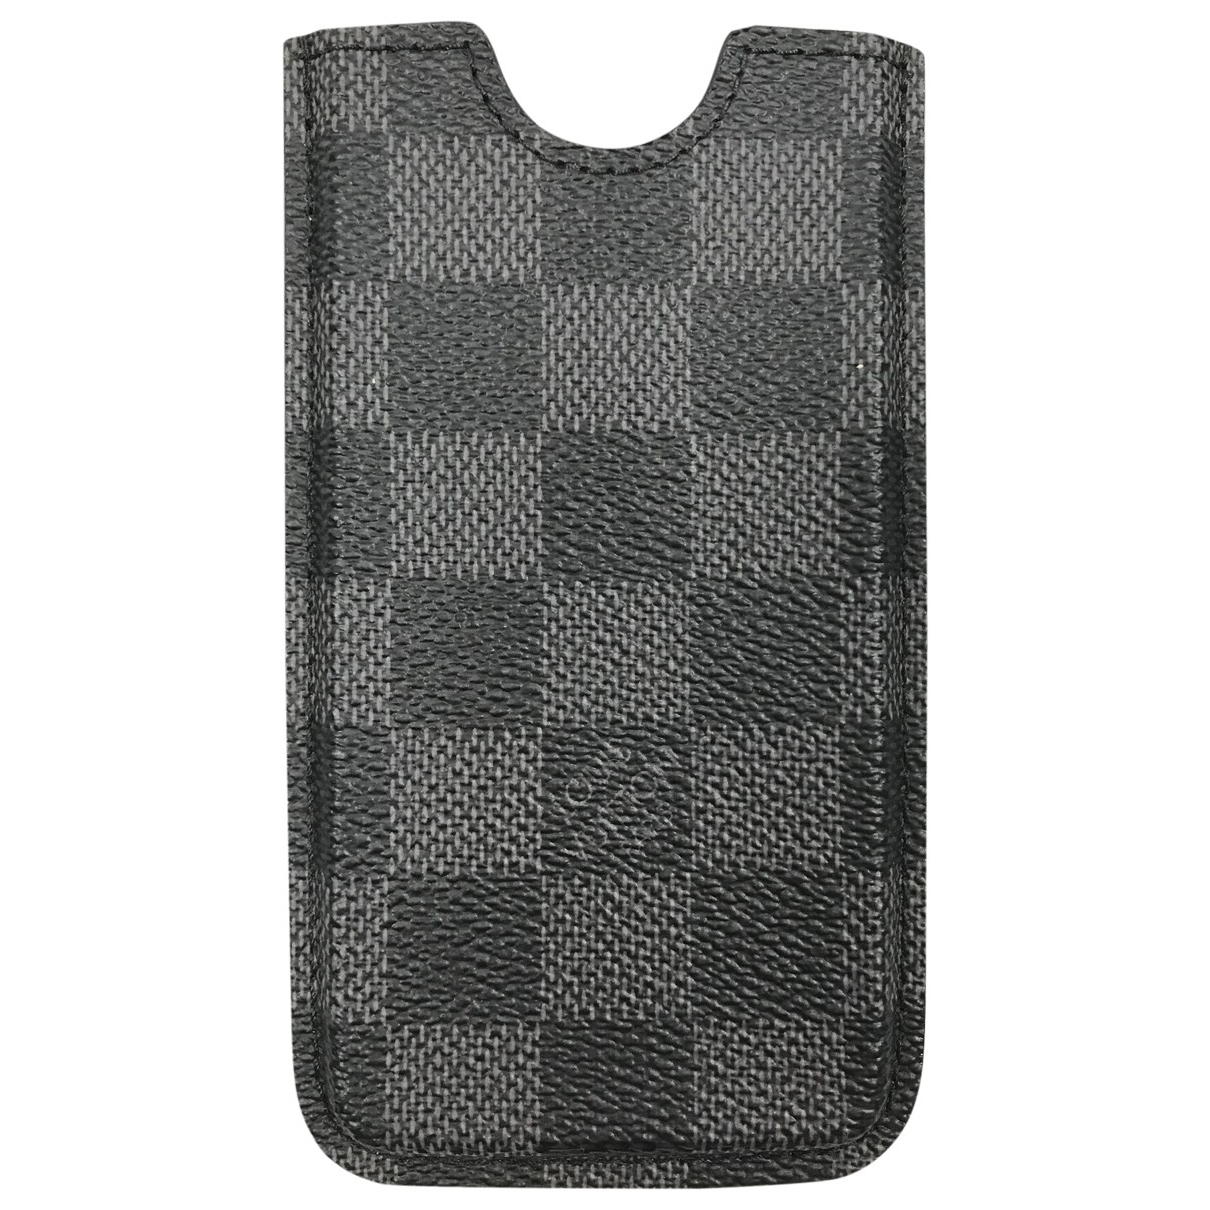 Funda iphone de Lona Louis Vuitton